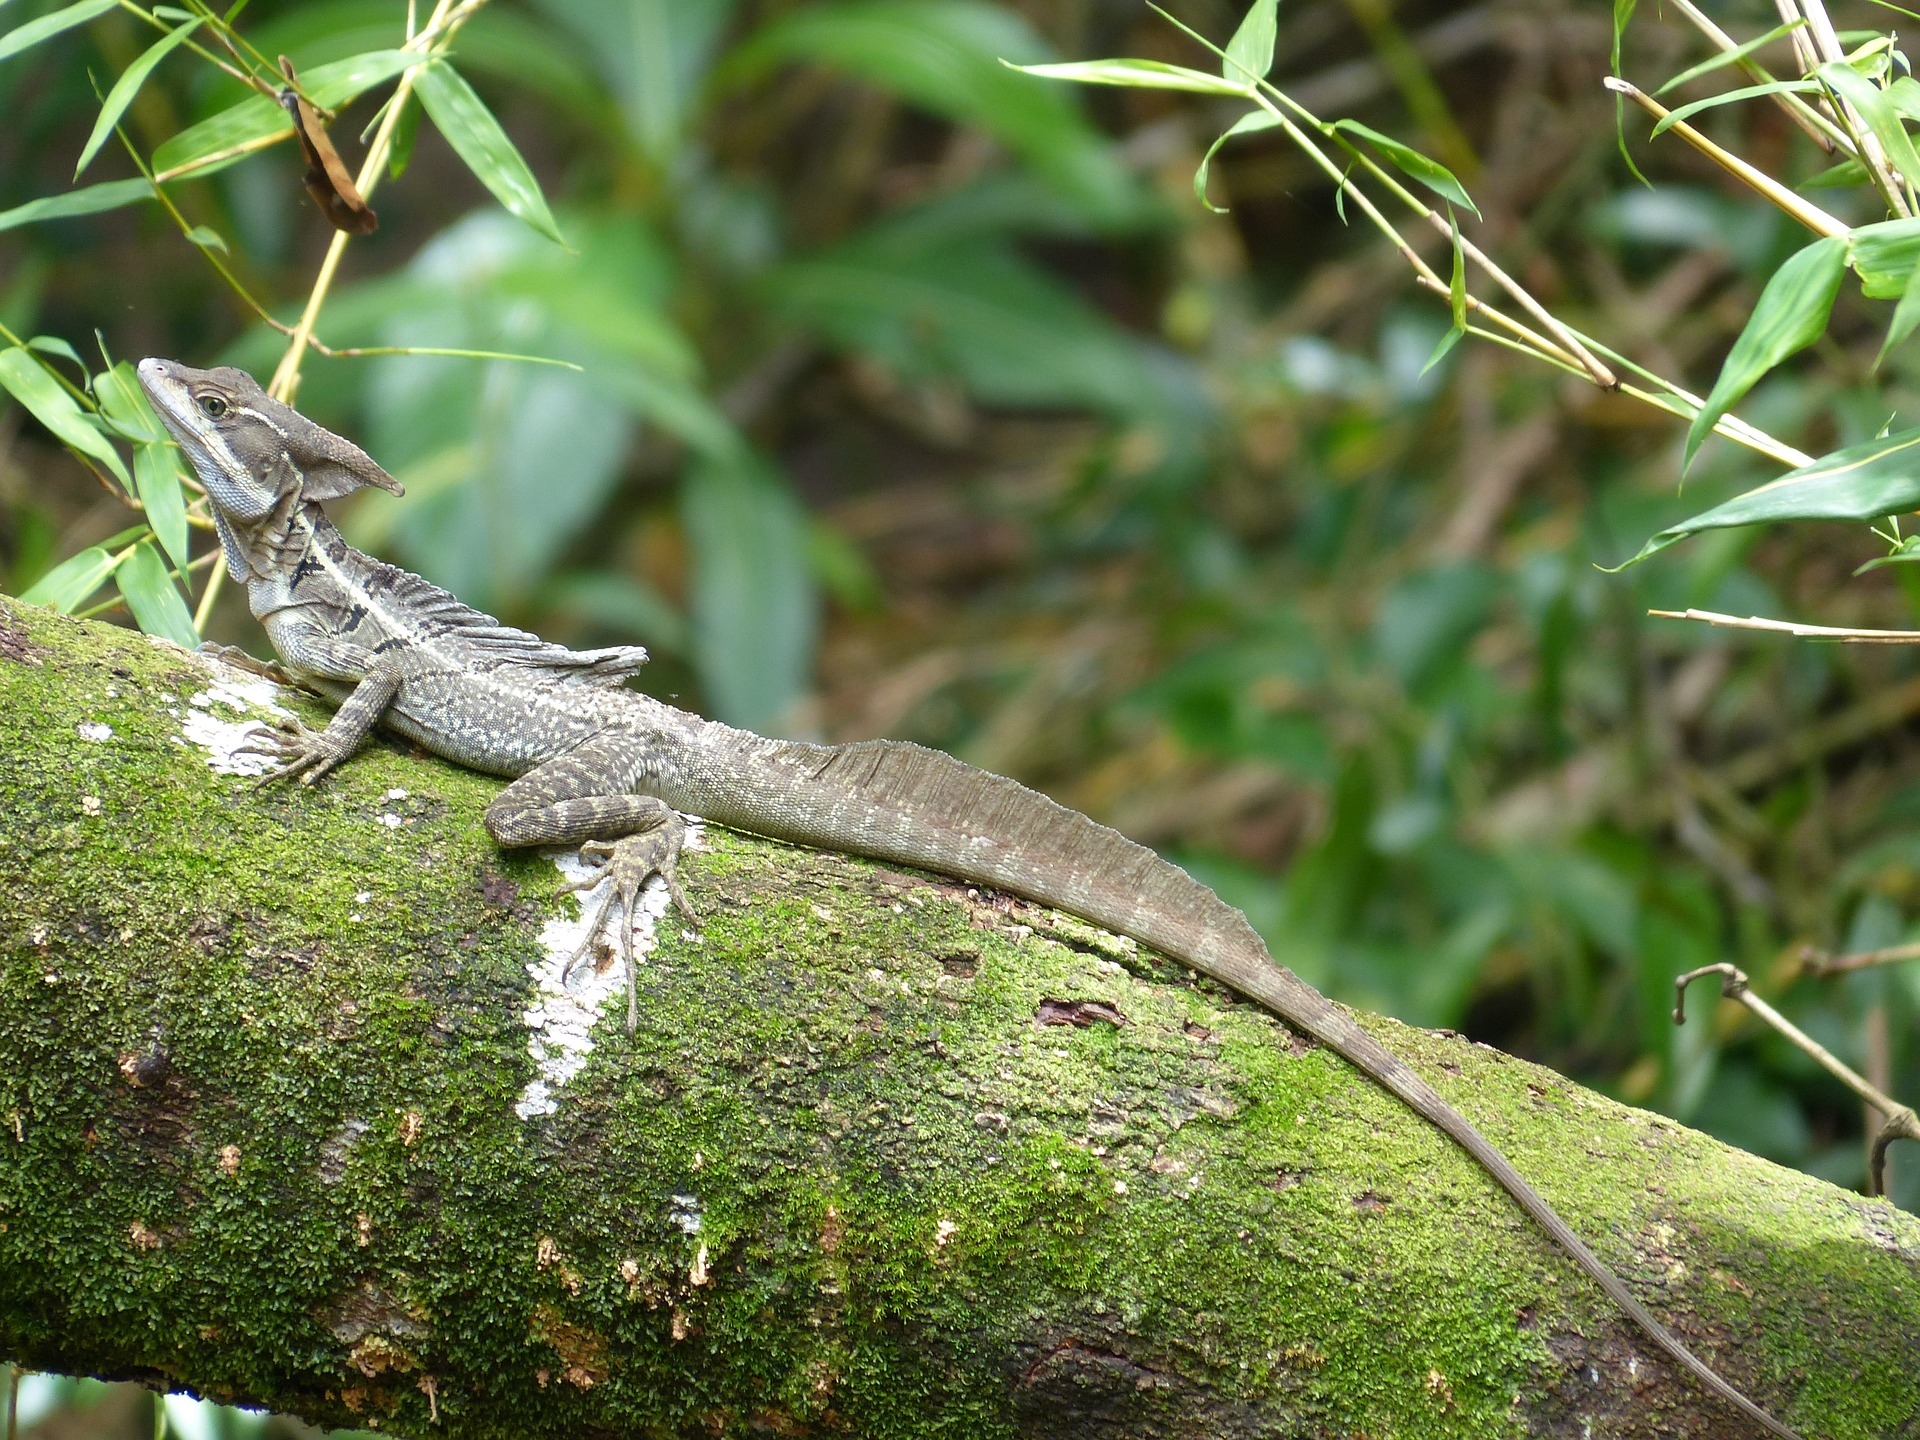 Guatemala wildlife - Brown Basilisk